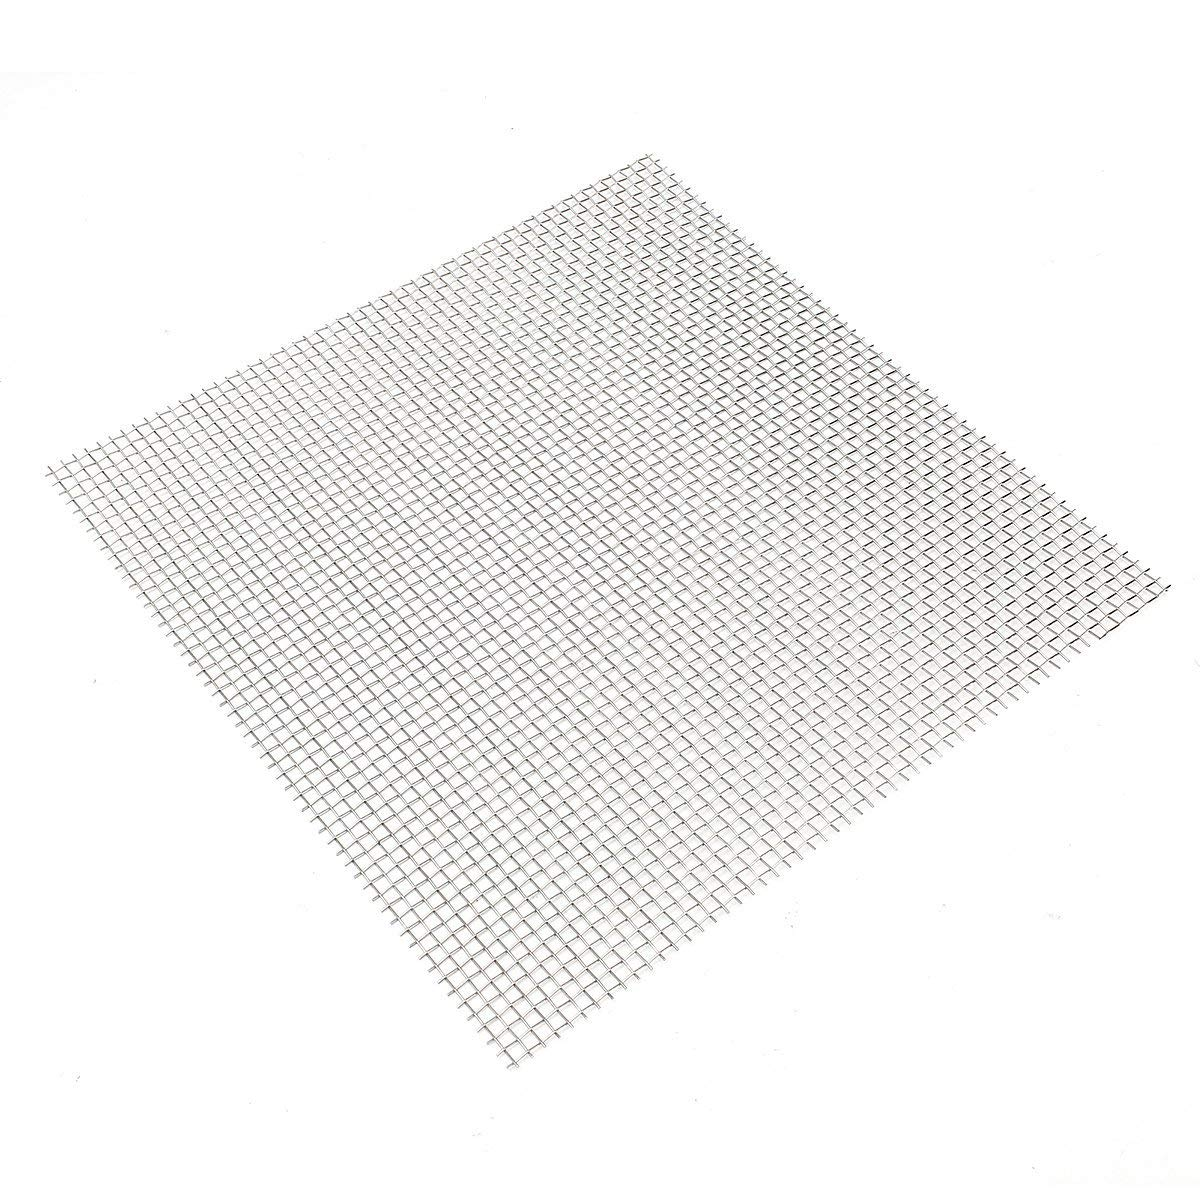 30x30cm Woven Wire 304 Stainless Steel Filtration Grill Sheet Filter 5 - Raw Materials Mesh & Wire Cloth - 1×Stainless Steel 4 Mesh Filtration